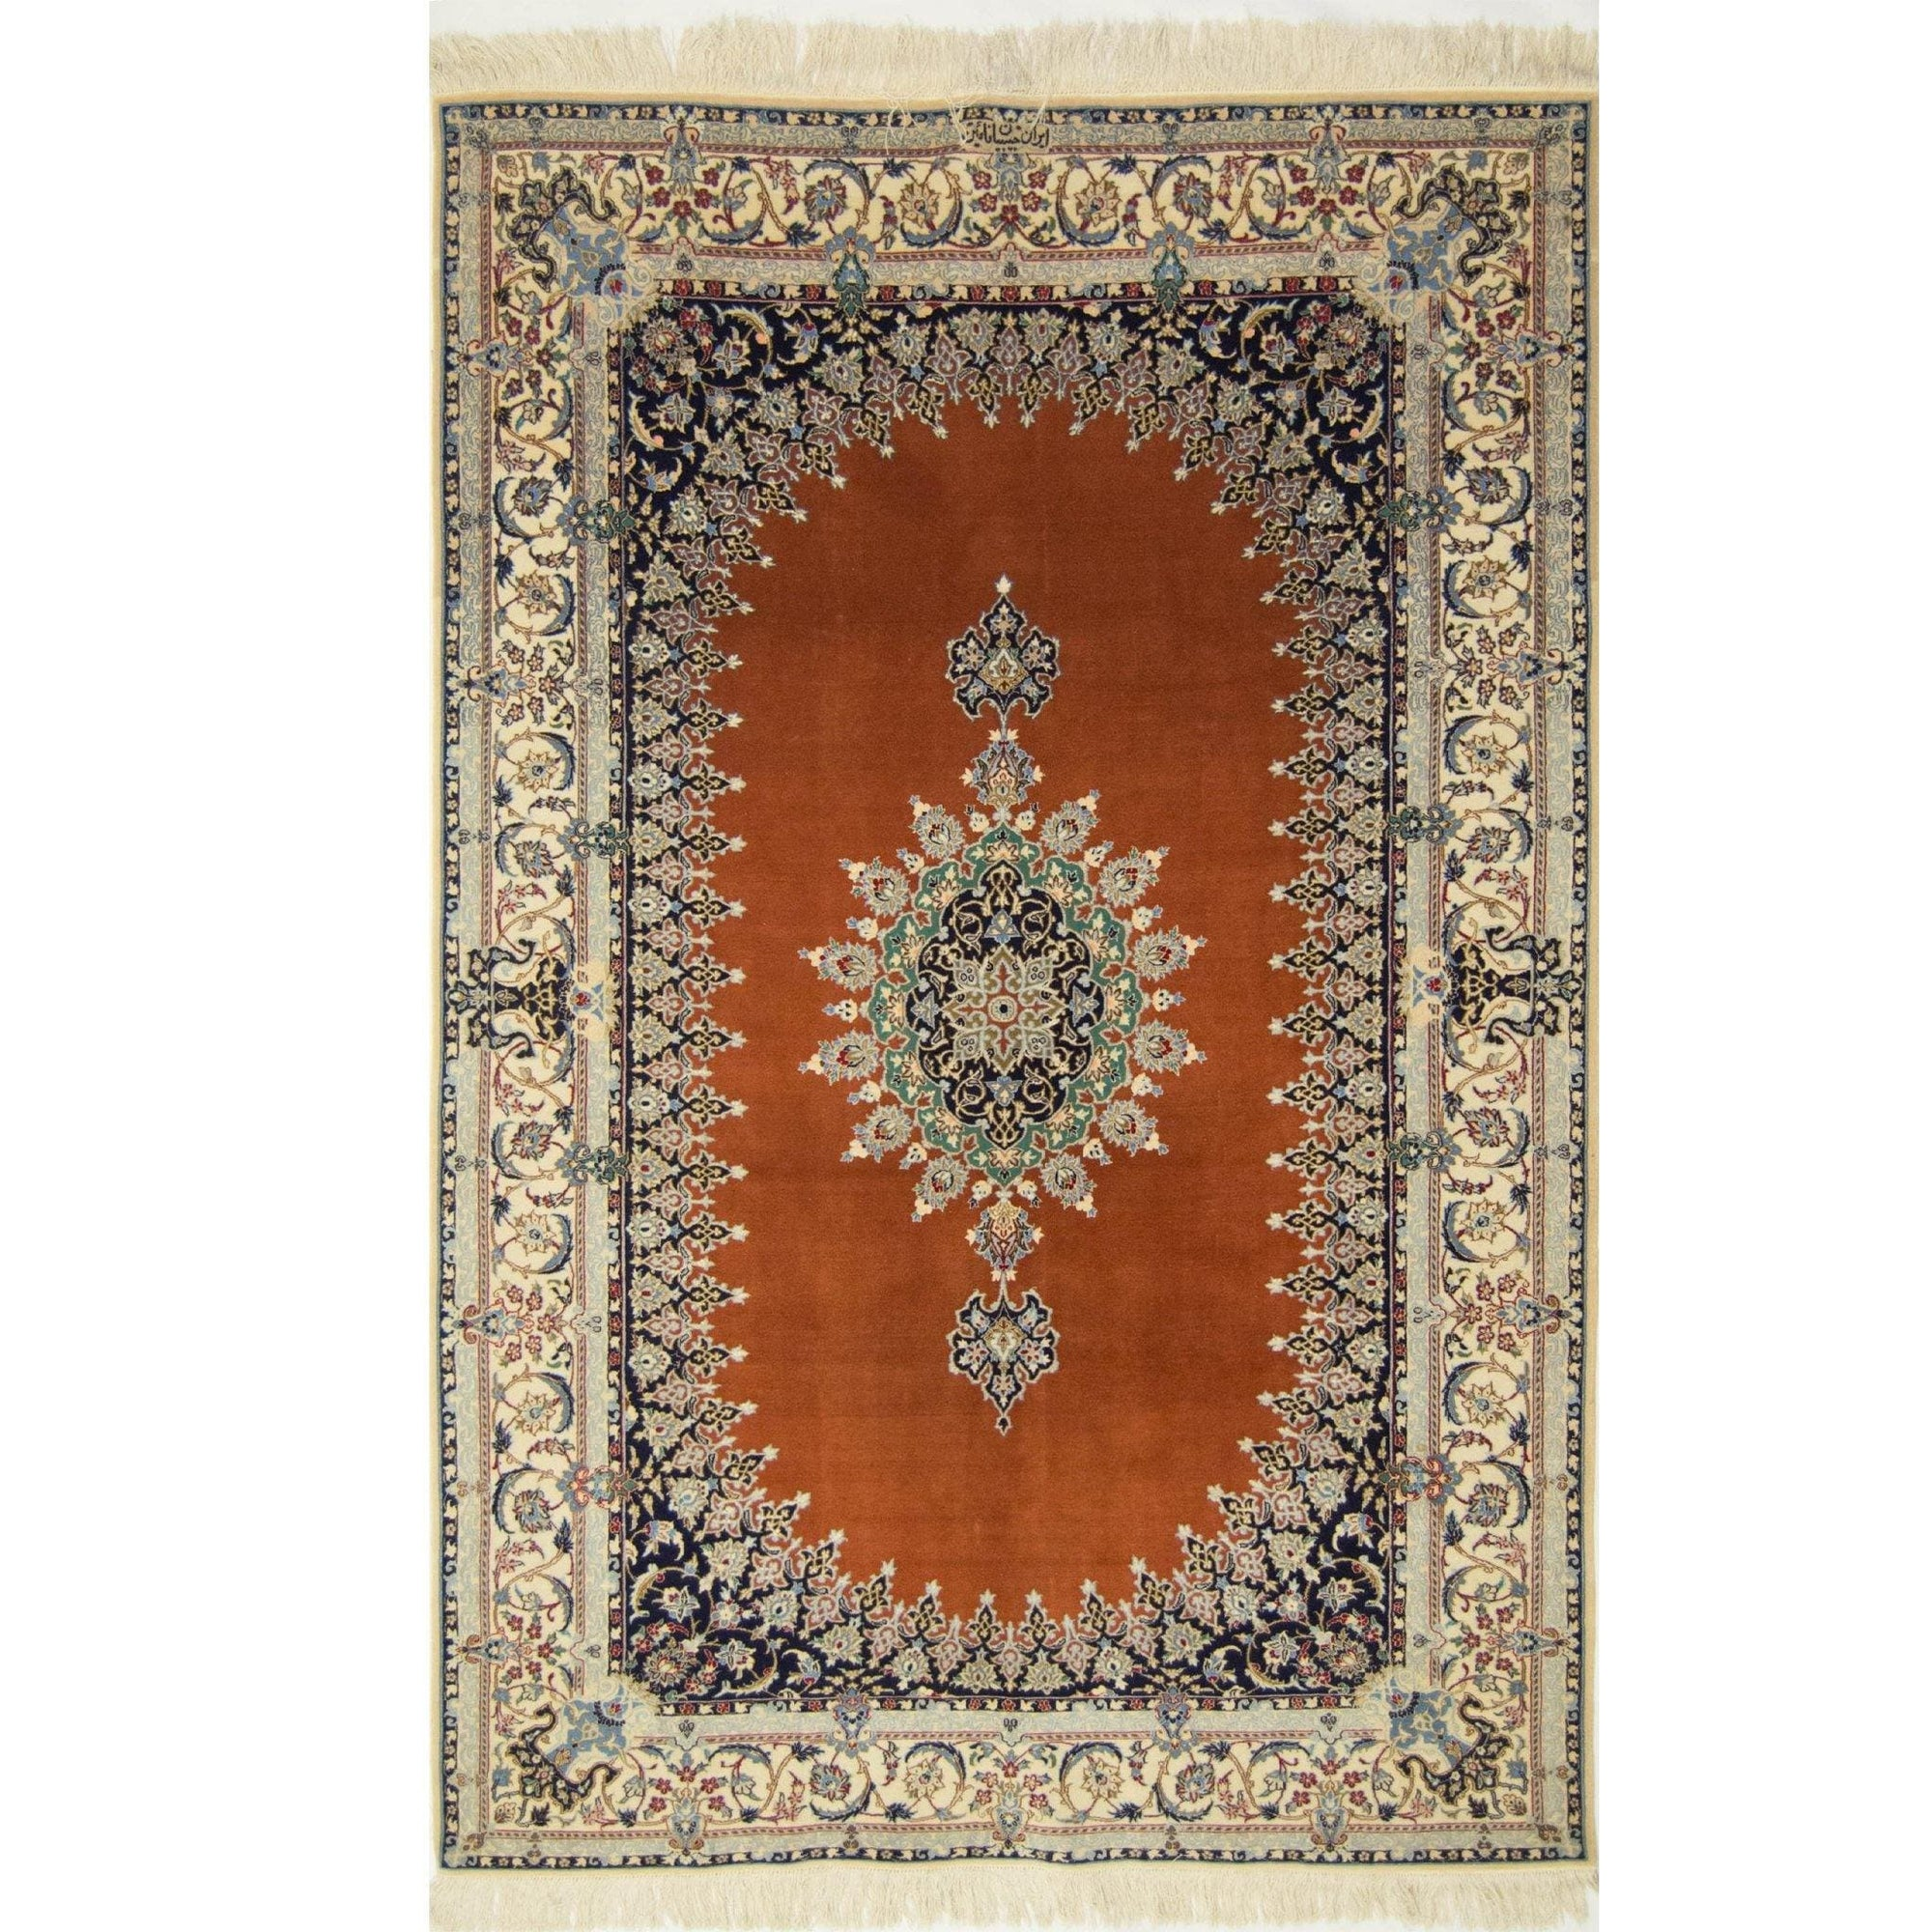 Authentic Fine Persian Hand-knotted Wool & Silk Nain Rug ( SINGED HABIBIYAN ) Persian-Rug | House-of-Haghi | NewMarket | Auckland | NZ | Handmade Persian Rugs | Hand Knotted Persian Rugs